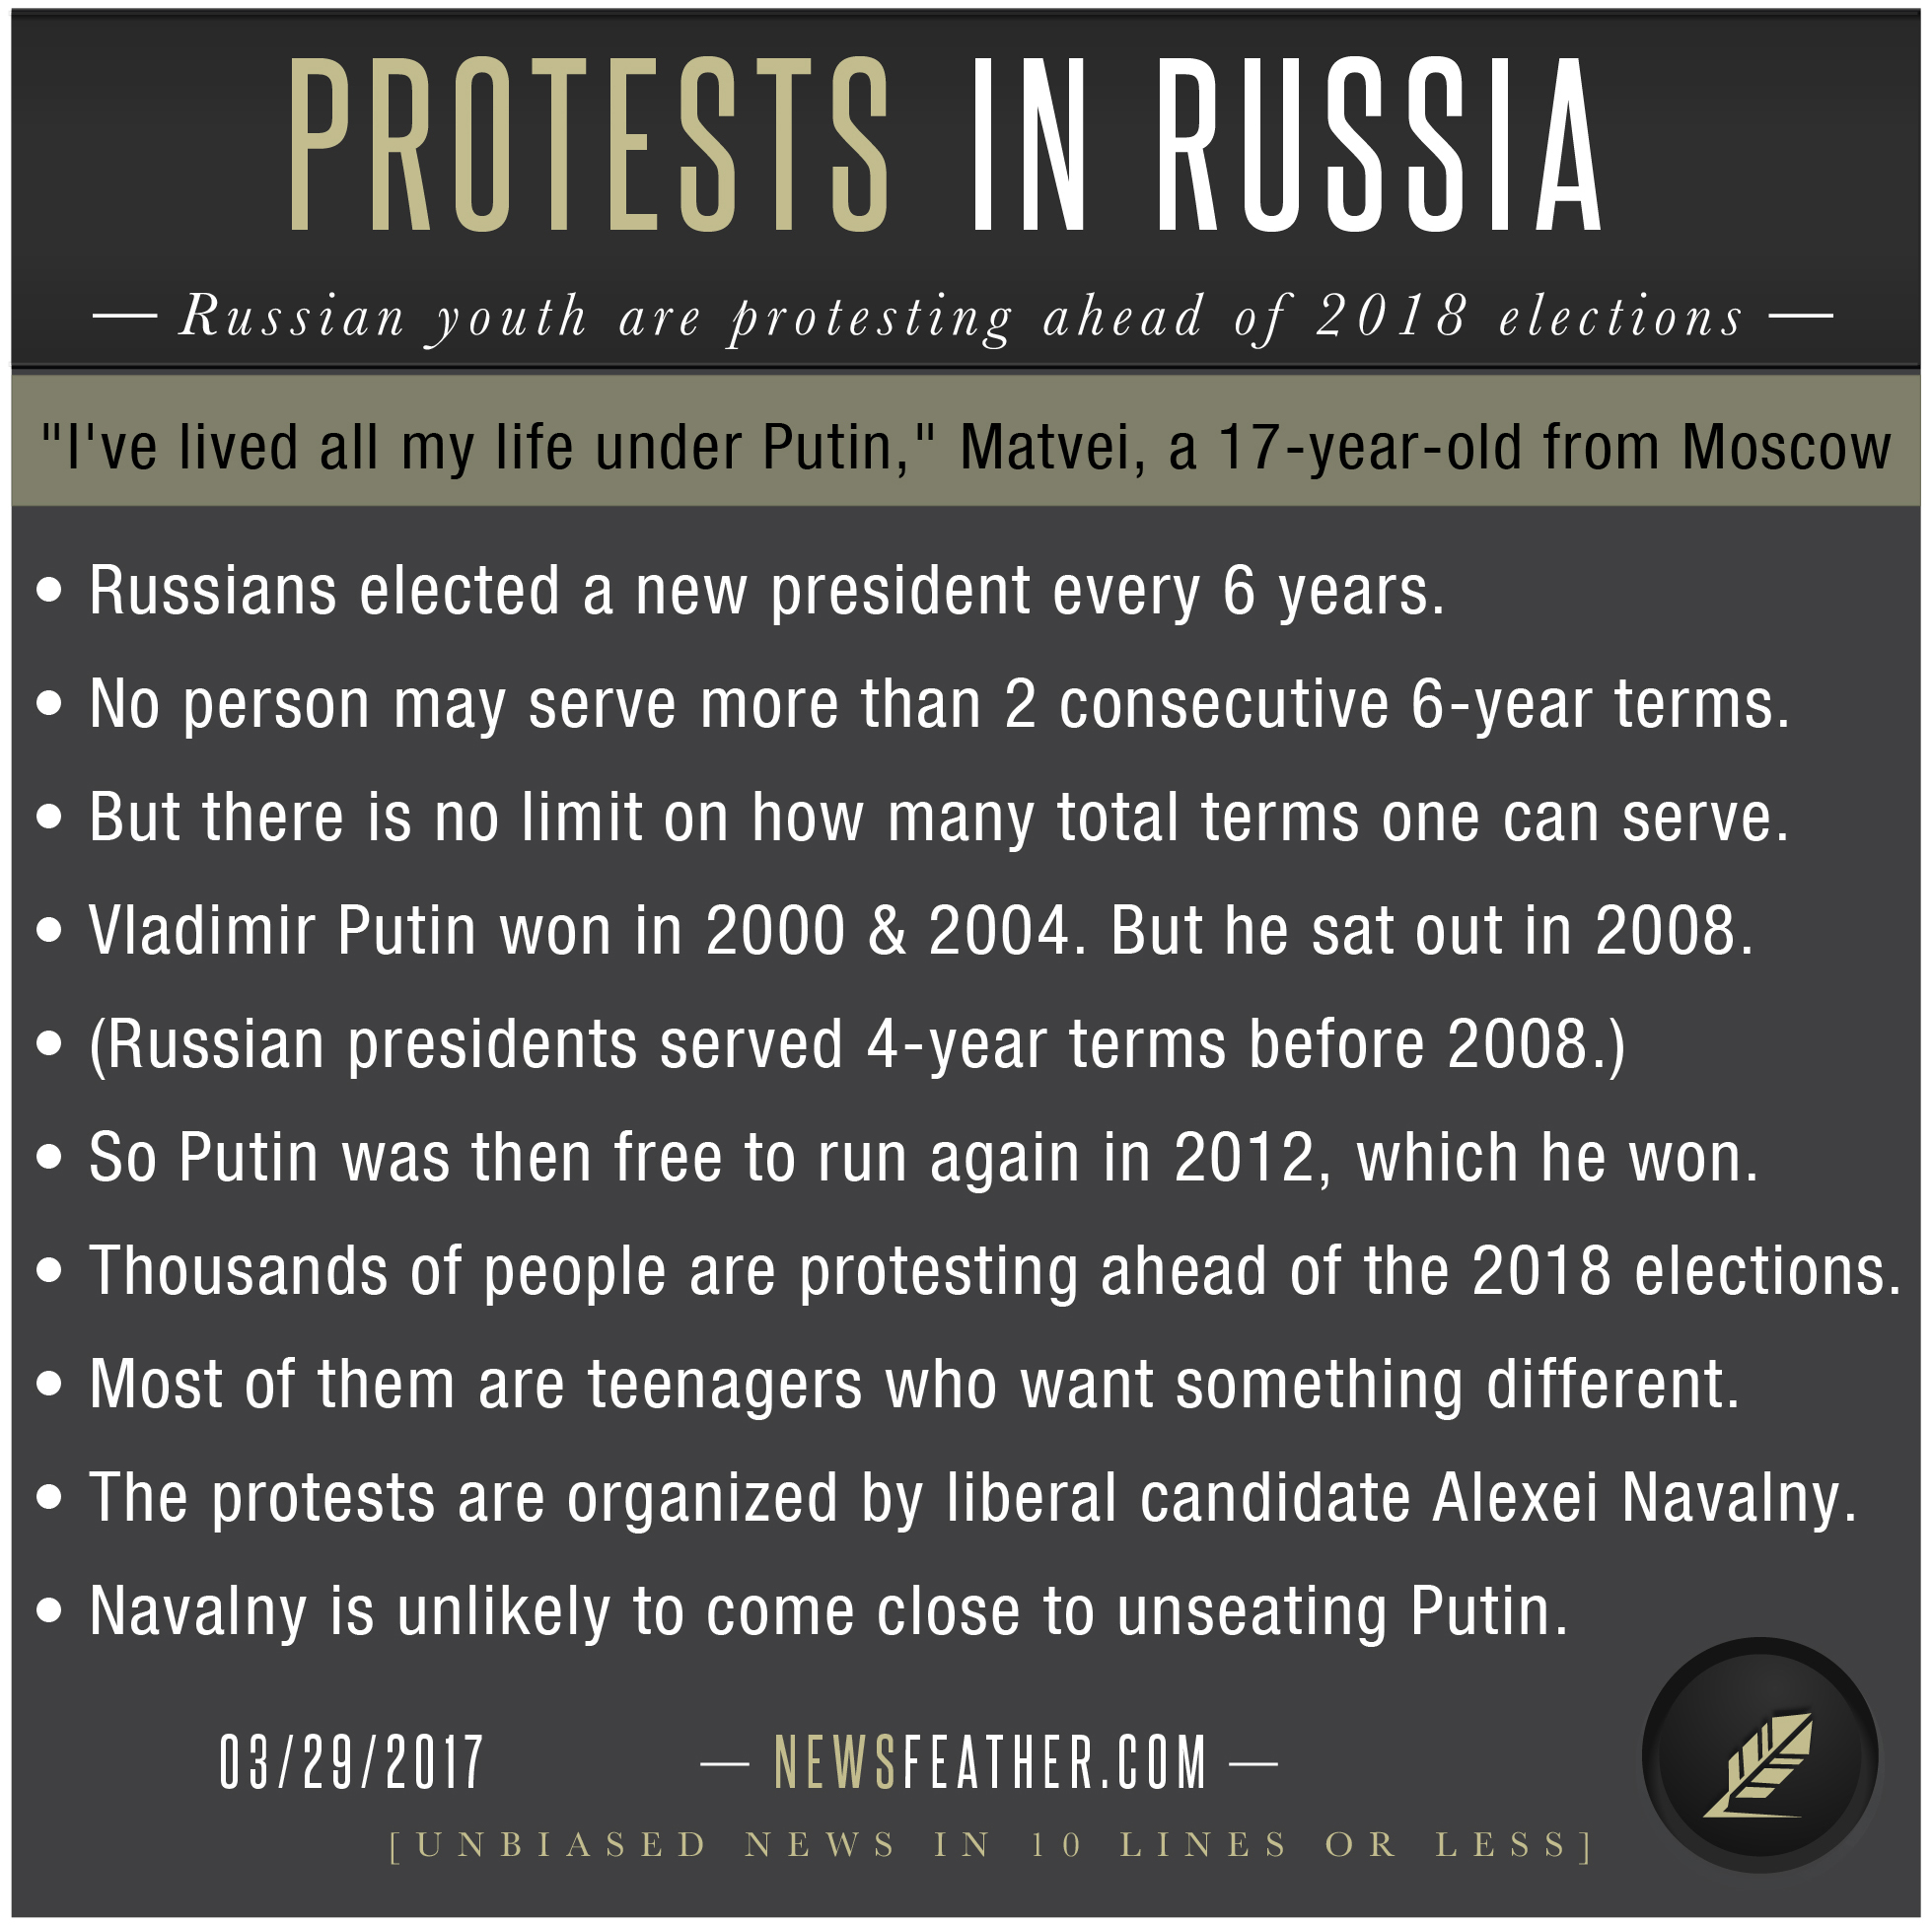 Russian anti-corruption political leaders are organizing massive protests in Moscow ahead of the 2018 presidential elections.